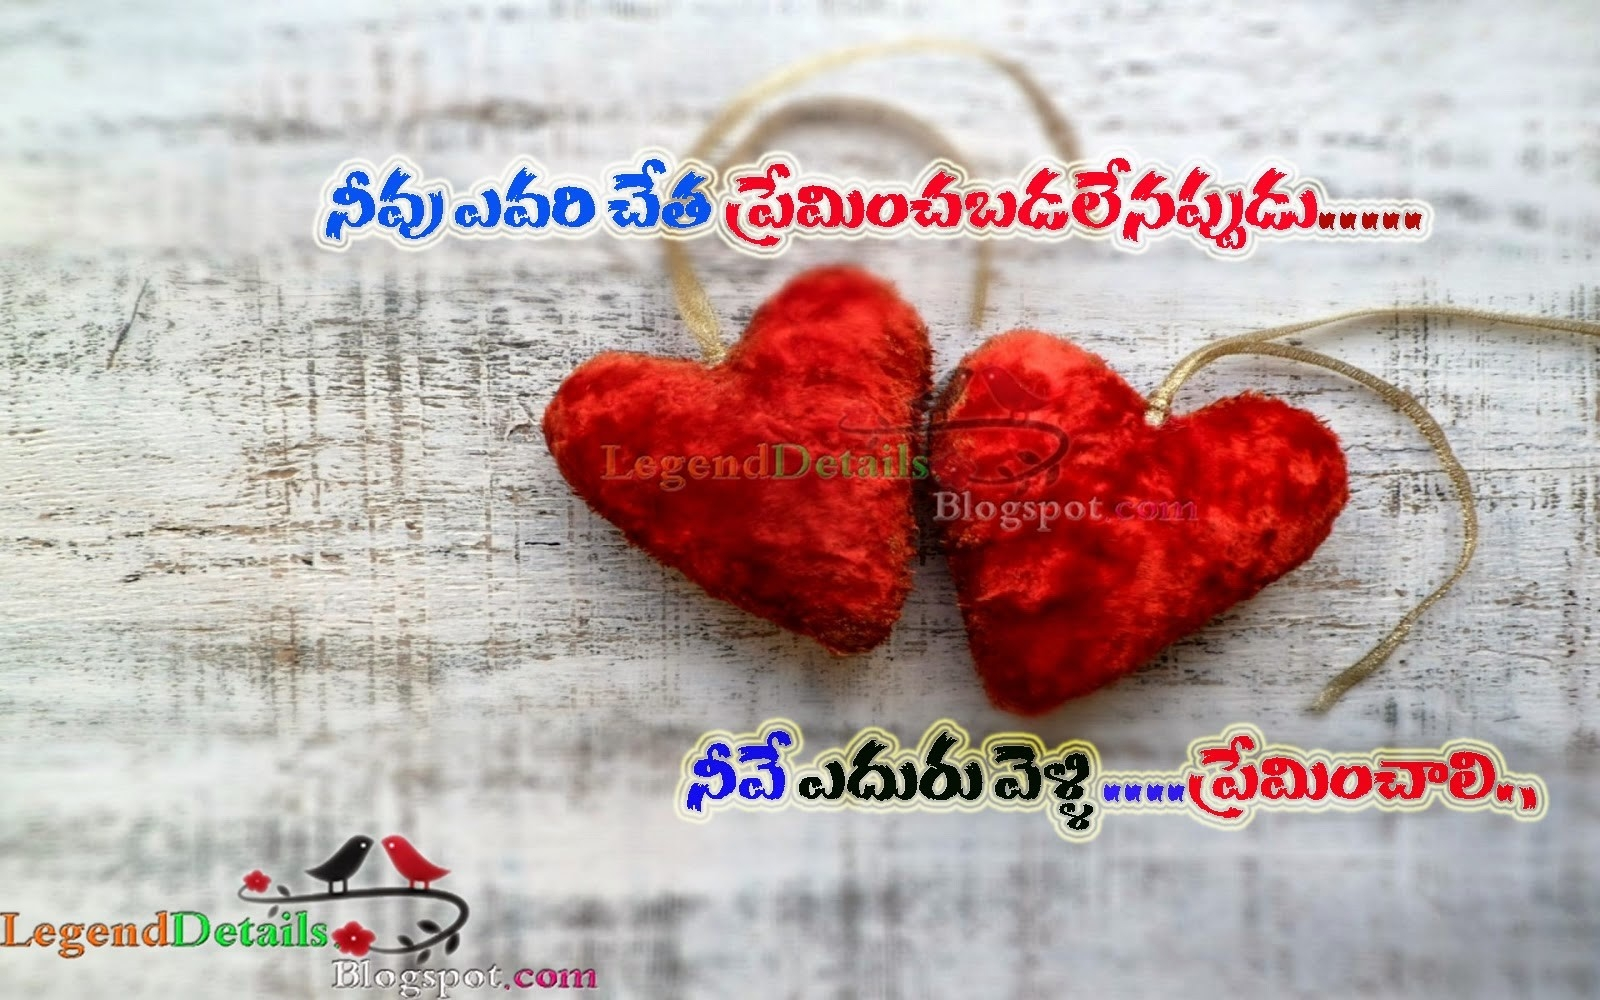 Famous New Telugu Love Quotes | Hd Wallpapers | Legendary Quotes intended for Sorry Images For Lover With Quotes In Telugu 28421